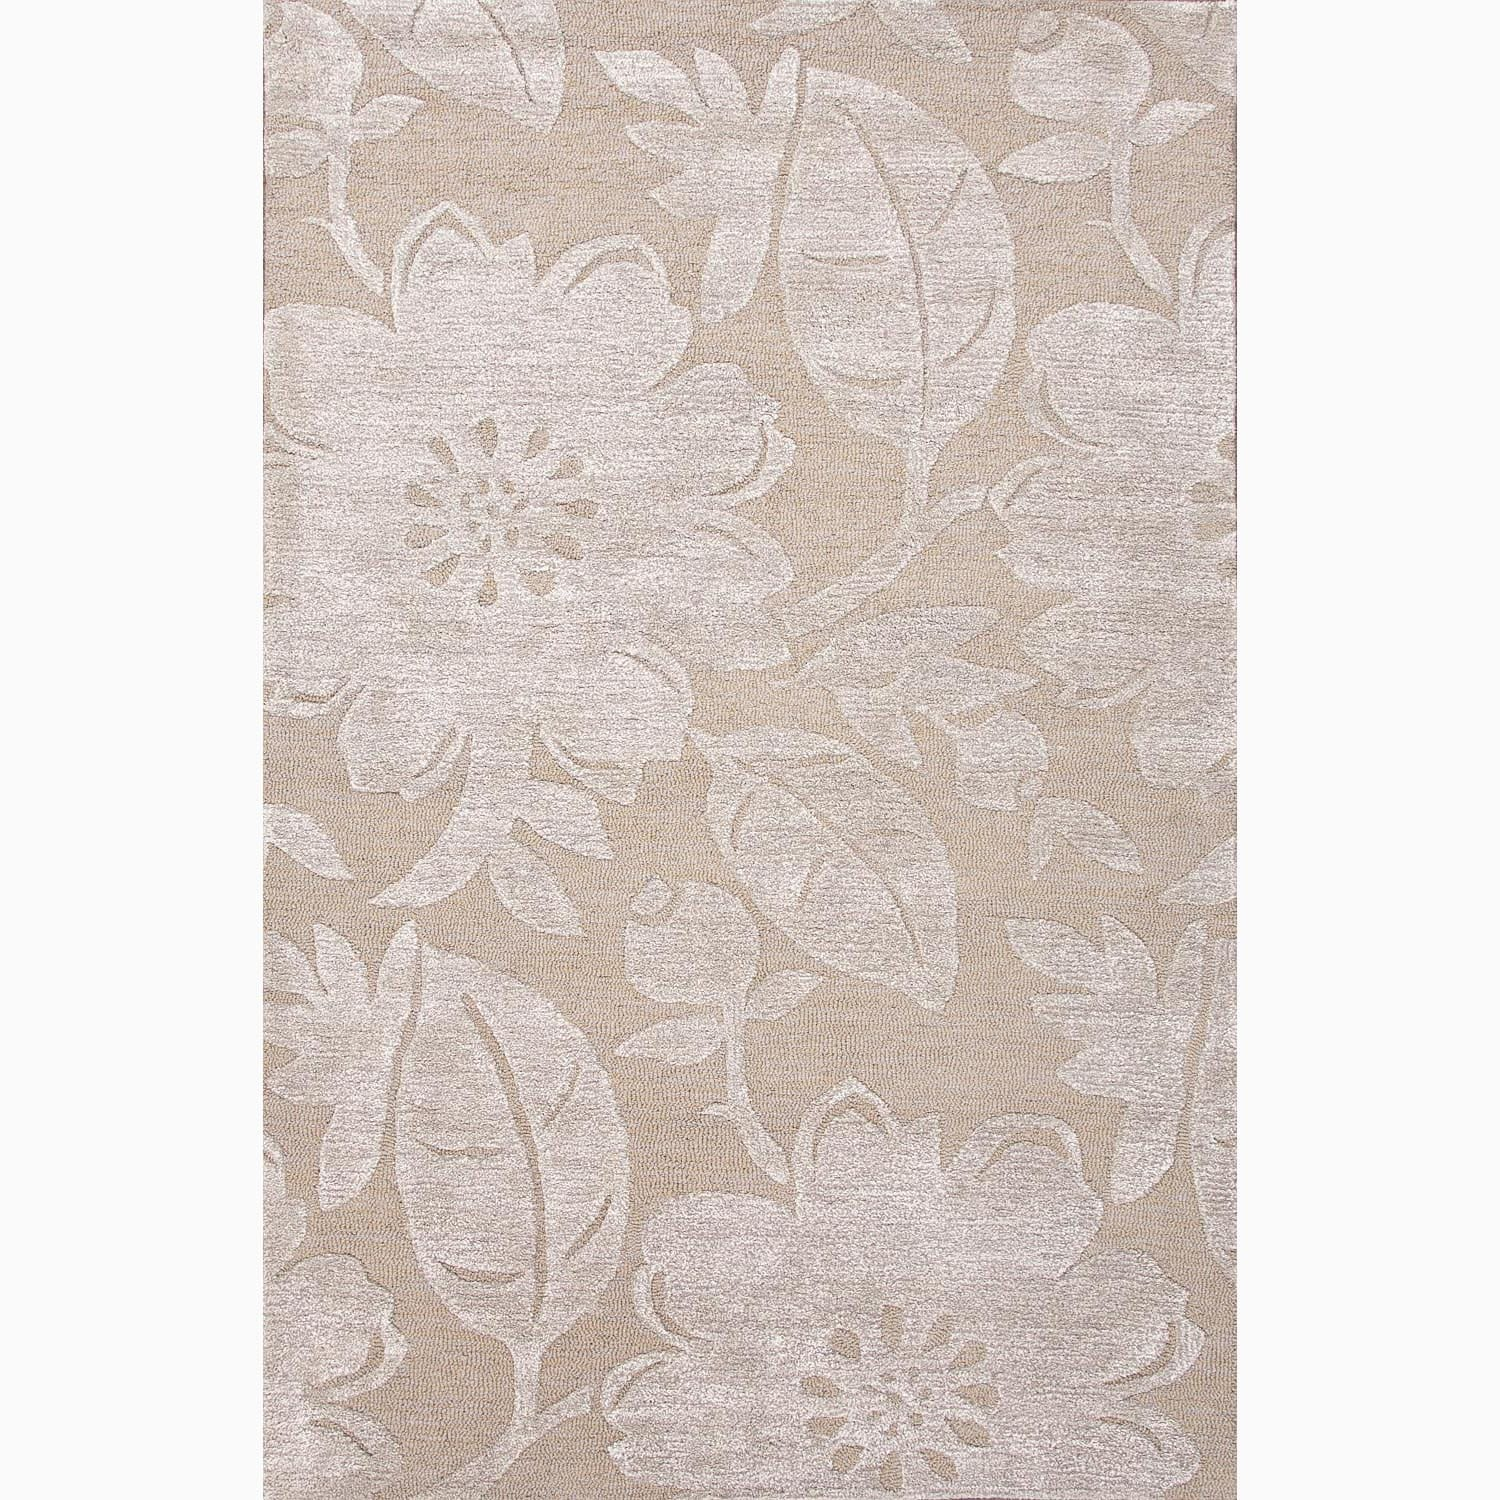 Handmade Taupe/ Gray Wool/ Art Silk Plush Pile Rug (9 x 12)